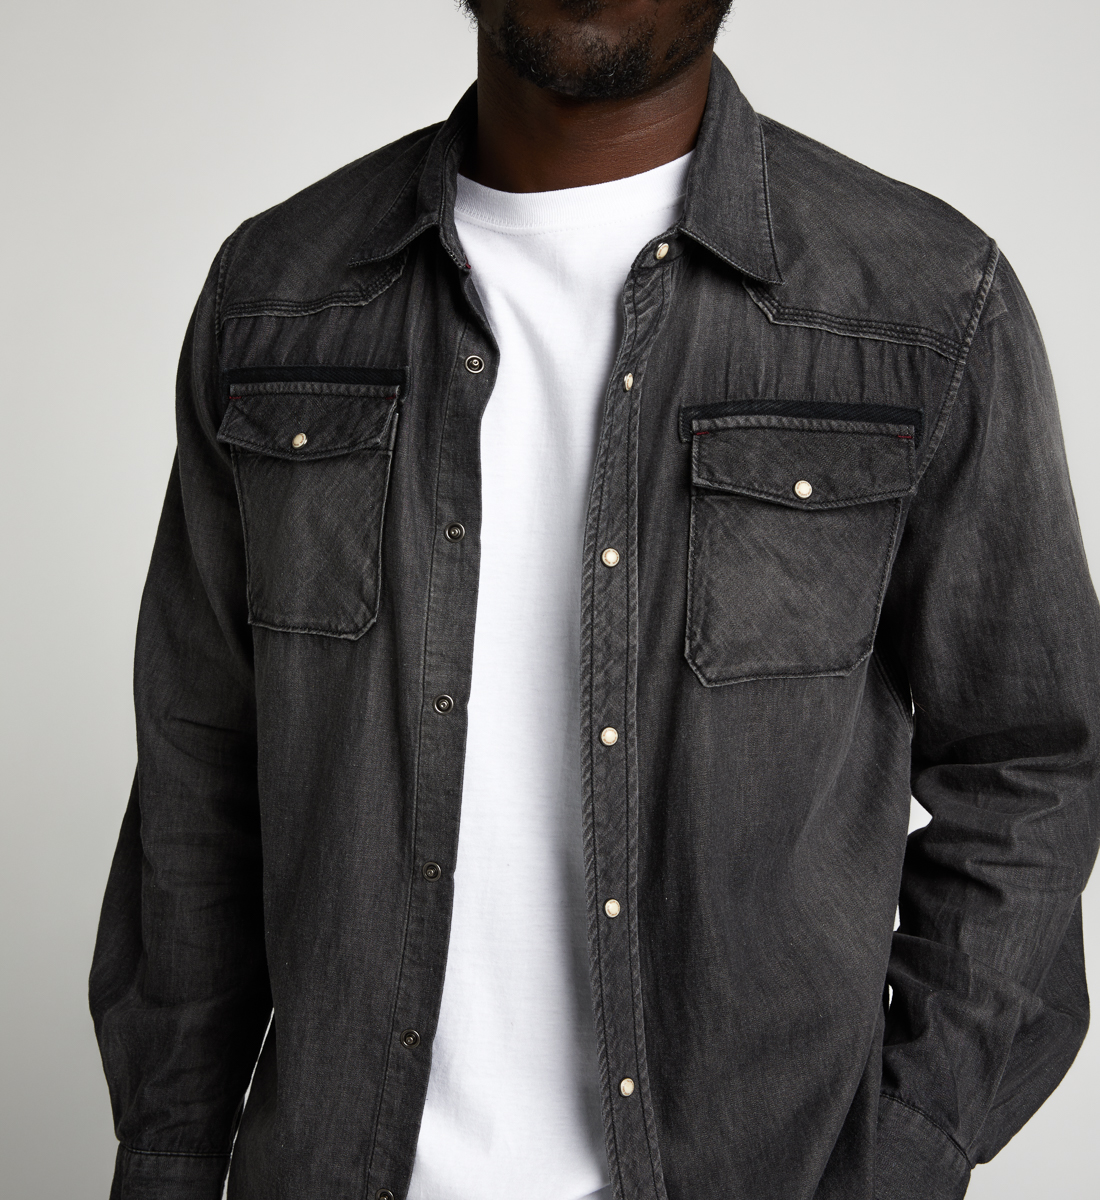 Charles Classic Denim Shirt Final Sale,Black Alt Image 1